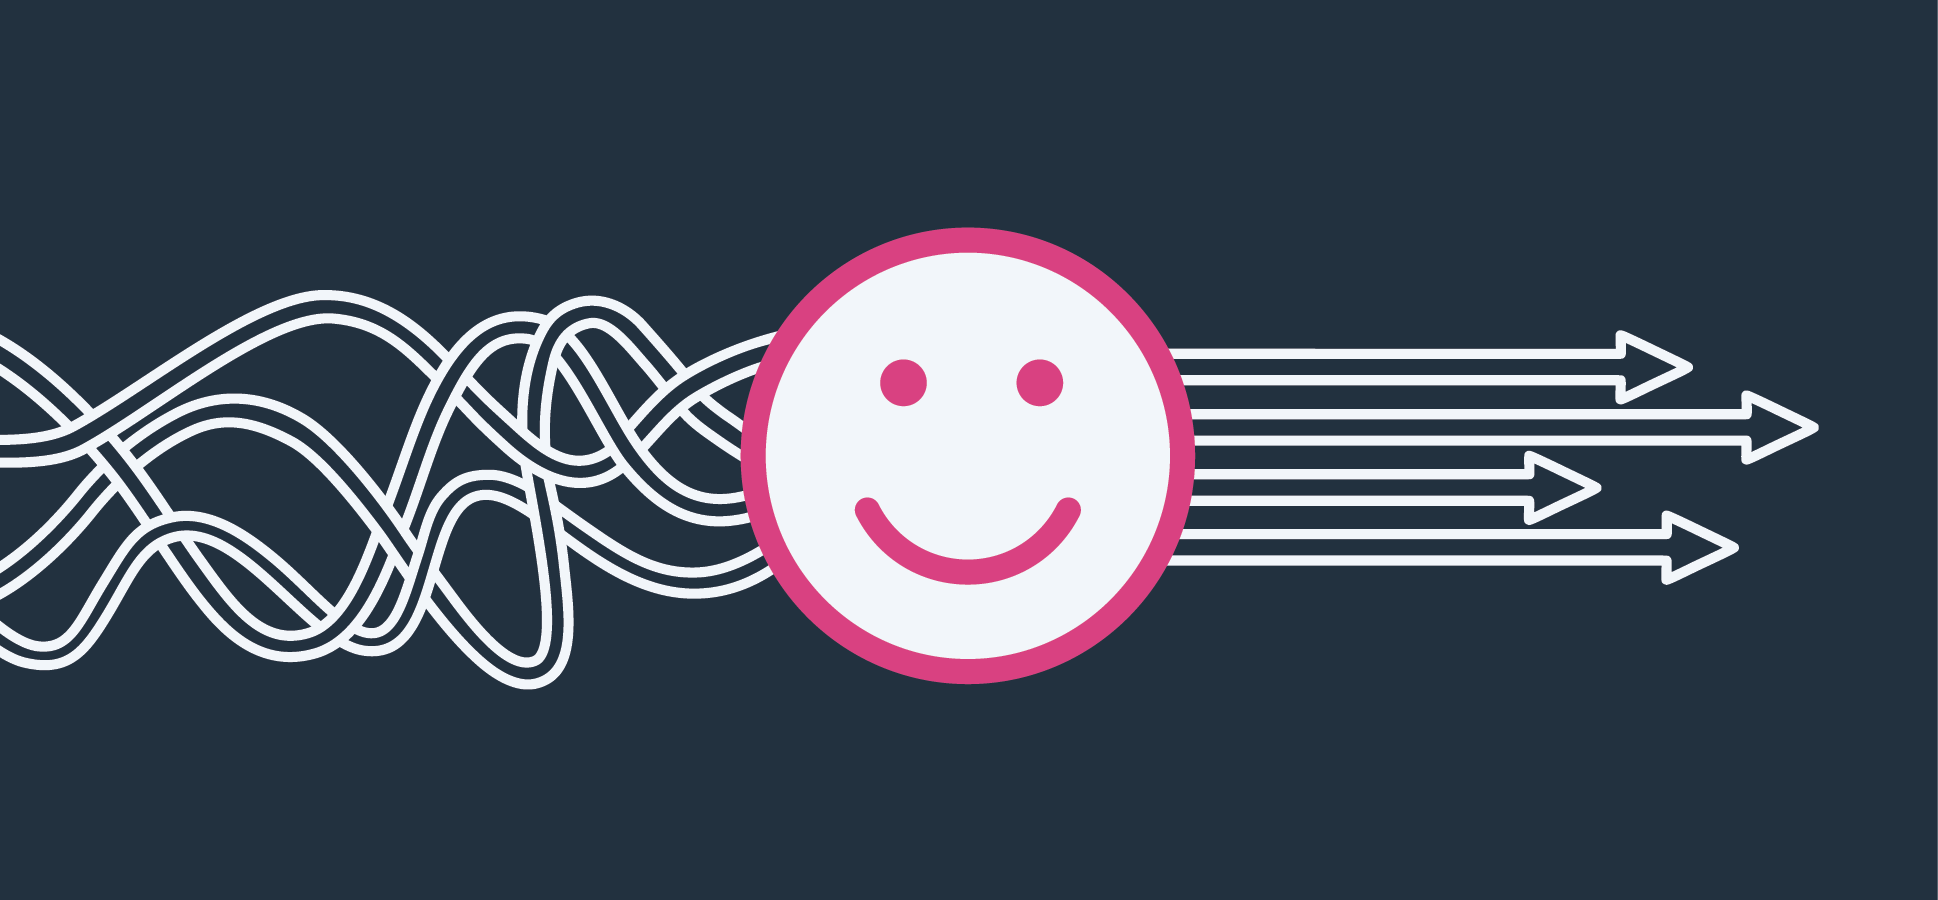 smiling icon representing employee retention and happiness